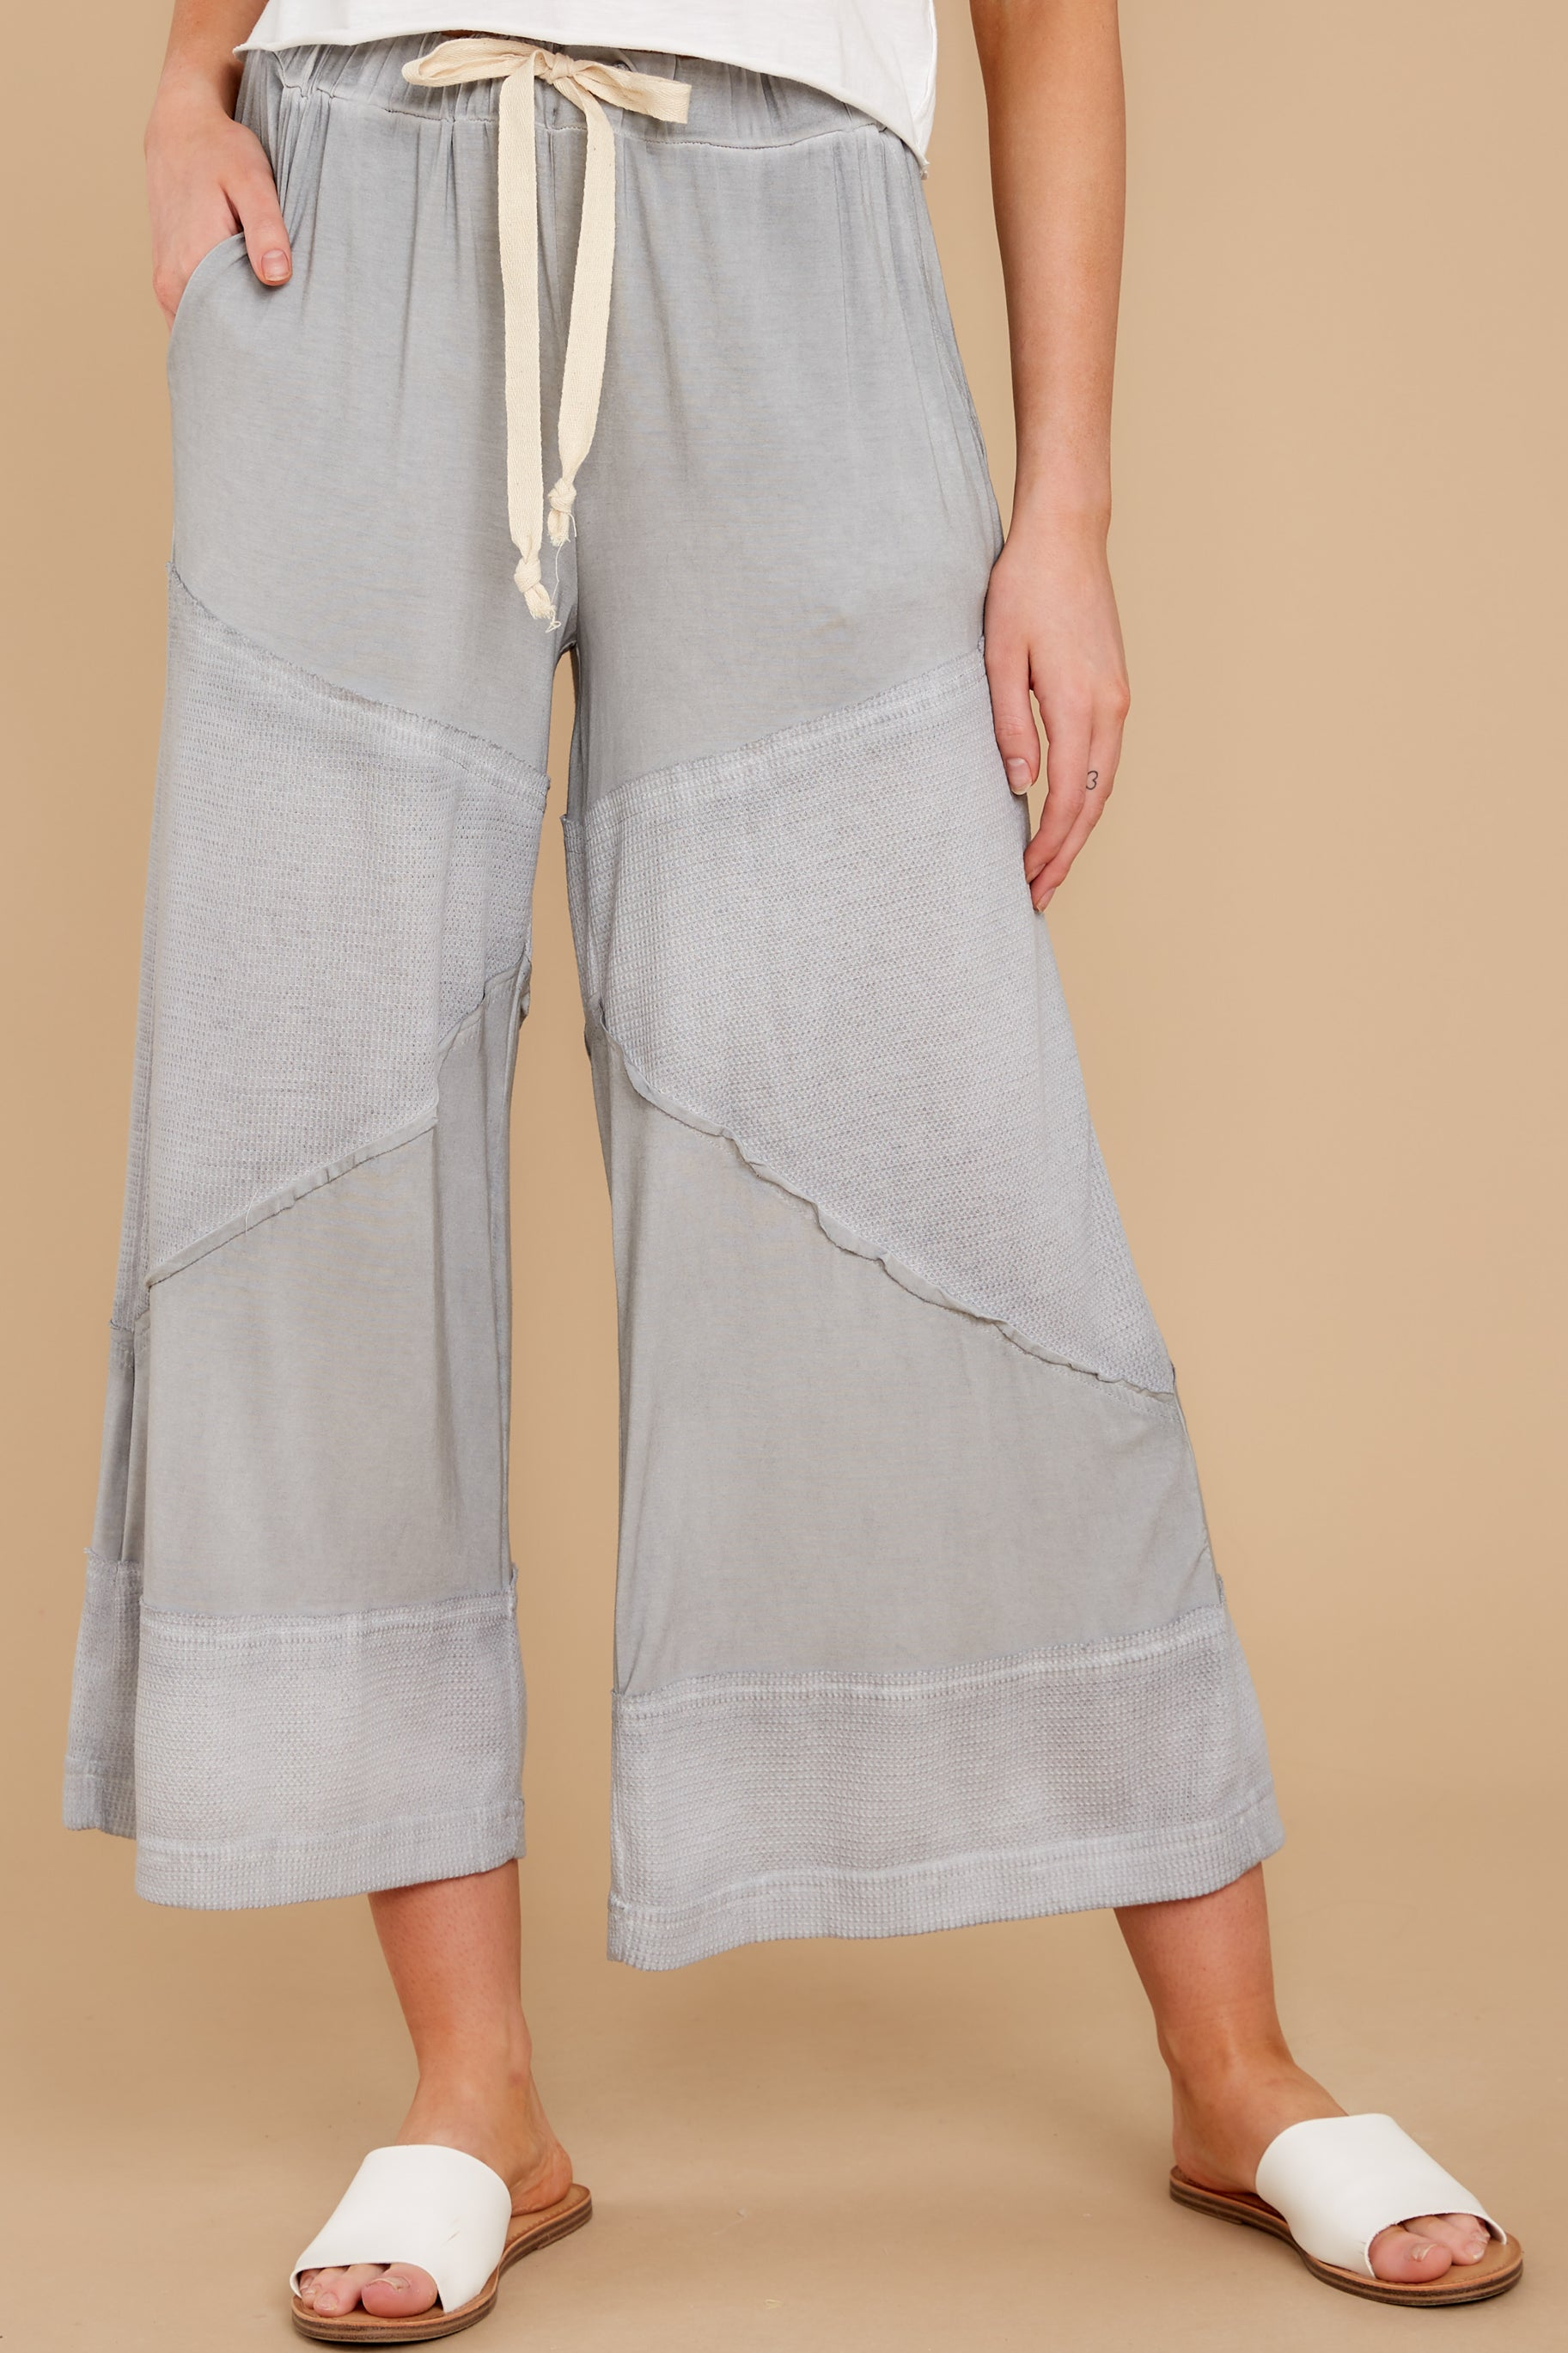 2 On The Other Side Dove Grey Pants at reddress.com